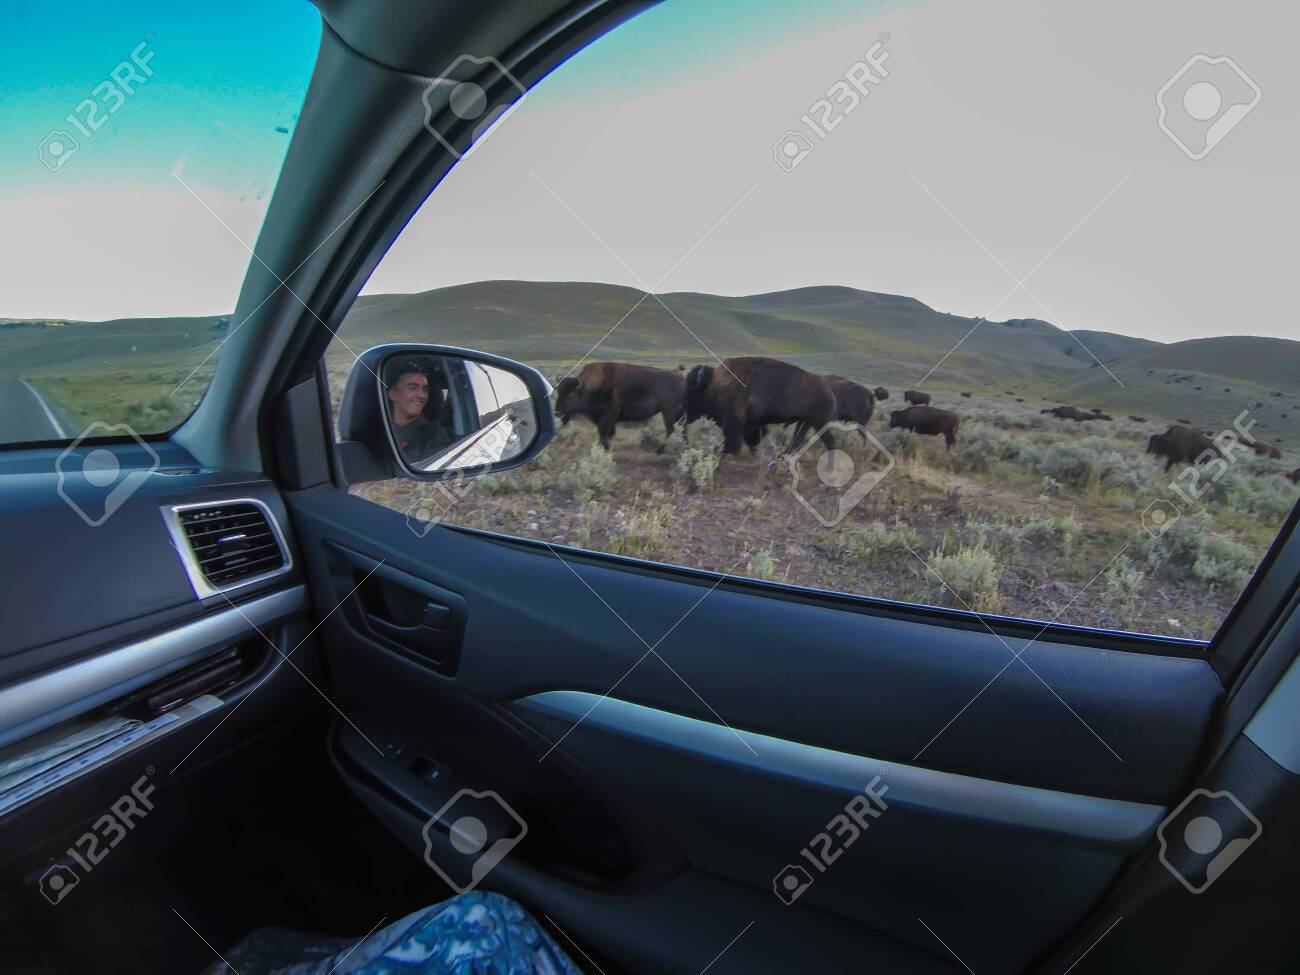 American Bison Grazing by Roadside With Passing Cars - 131966586